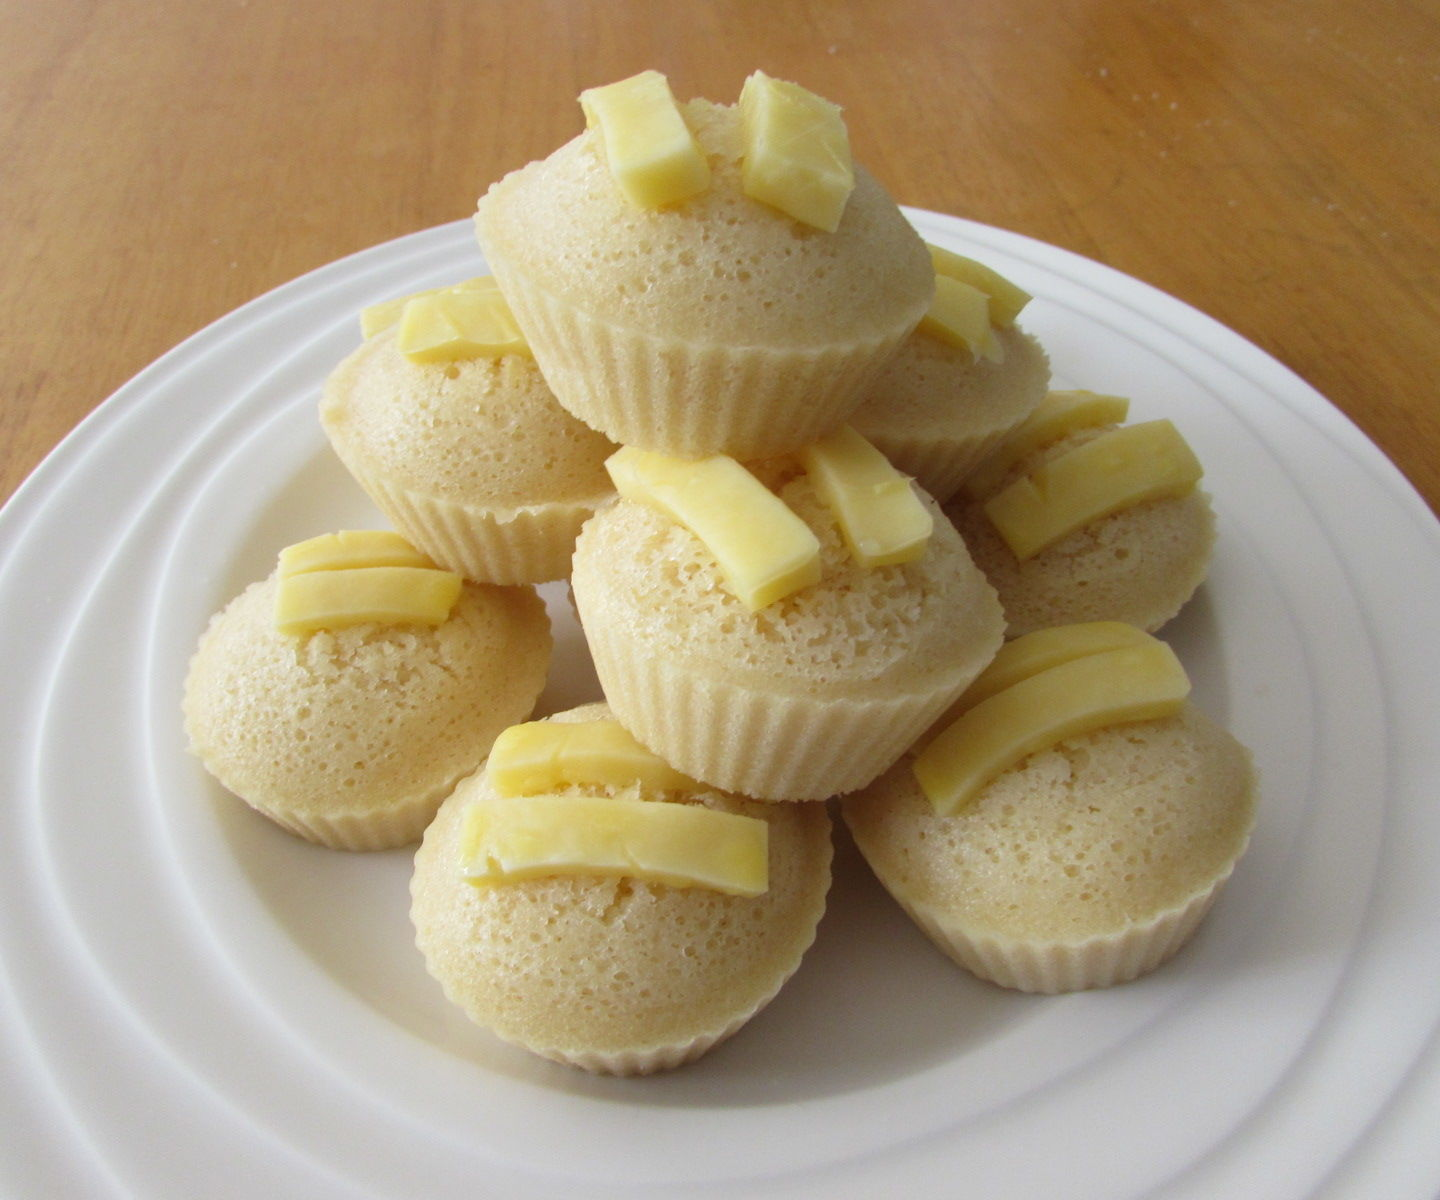 Steamed Butter Muffins with Cheese Topping (Butter Puto)